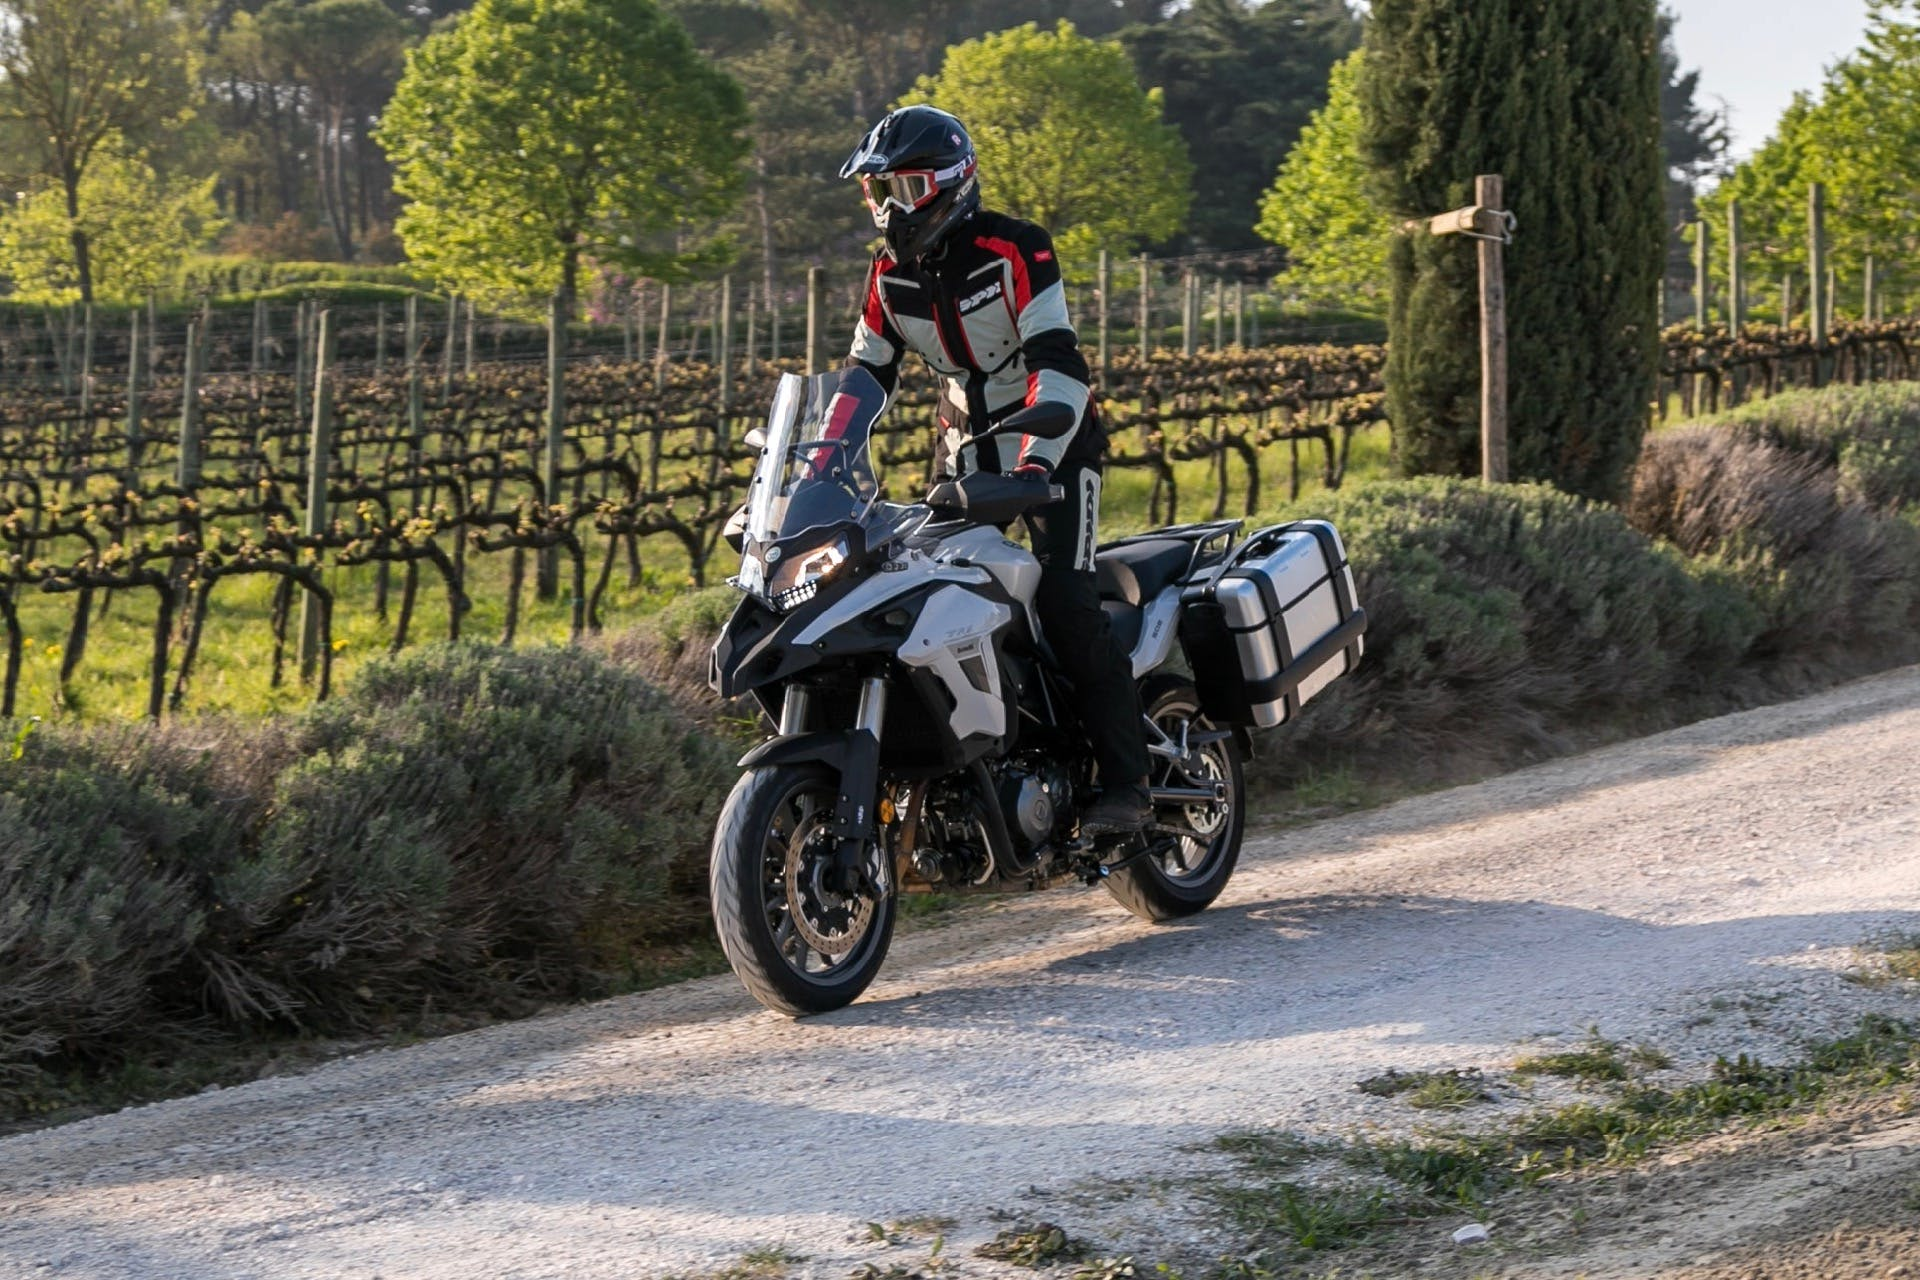 Benelli TRK 502 in movimento sullo sterrato